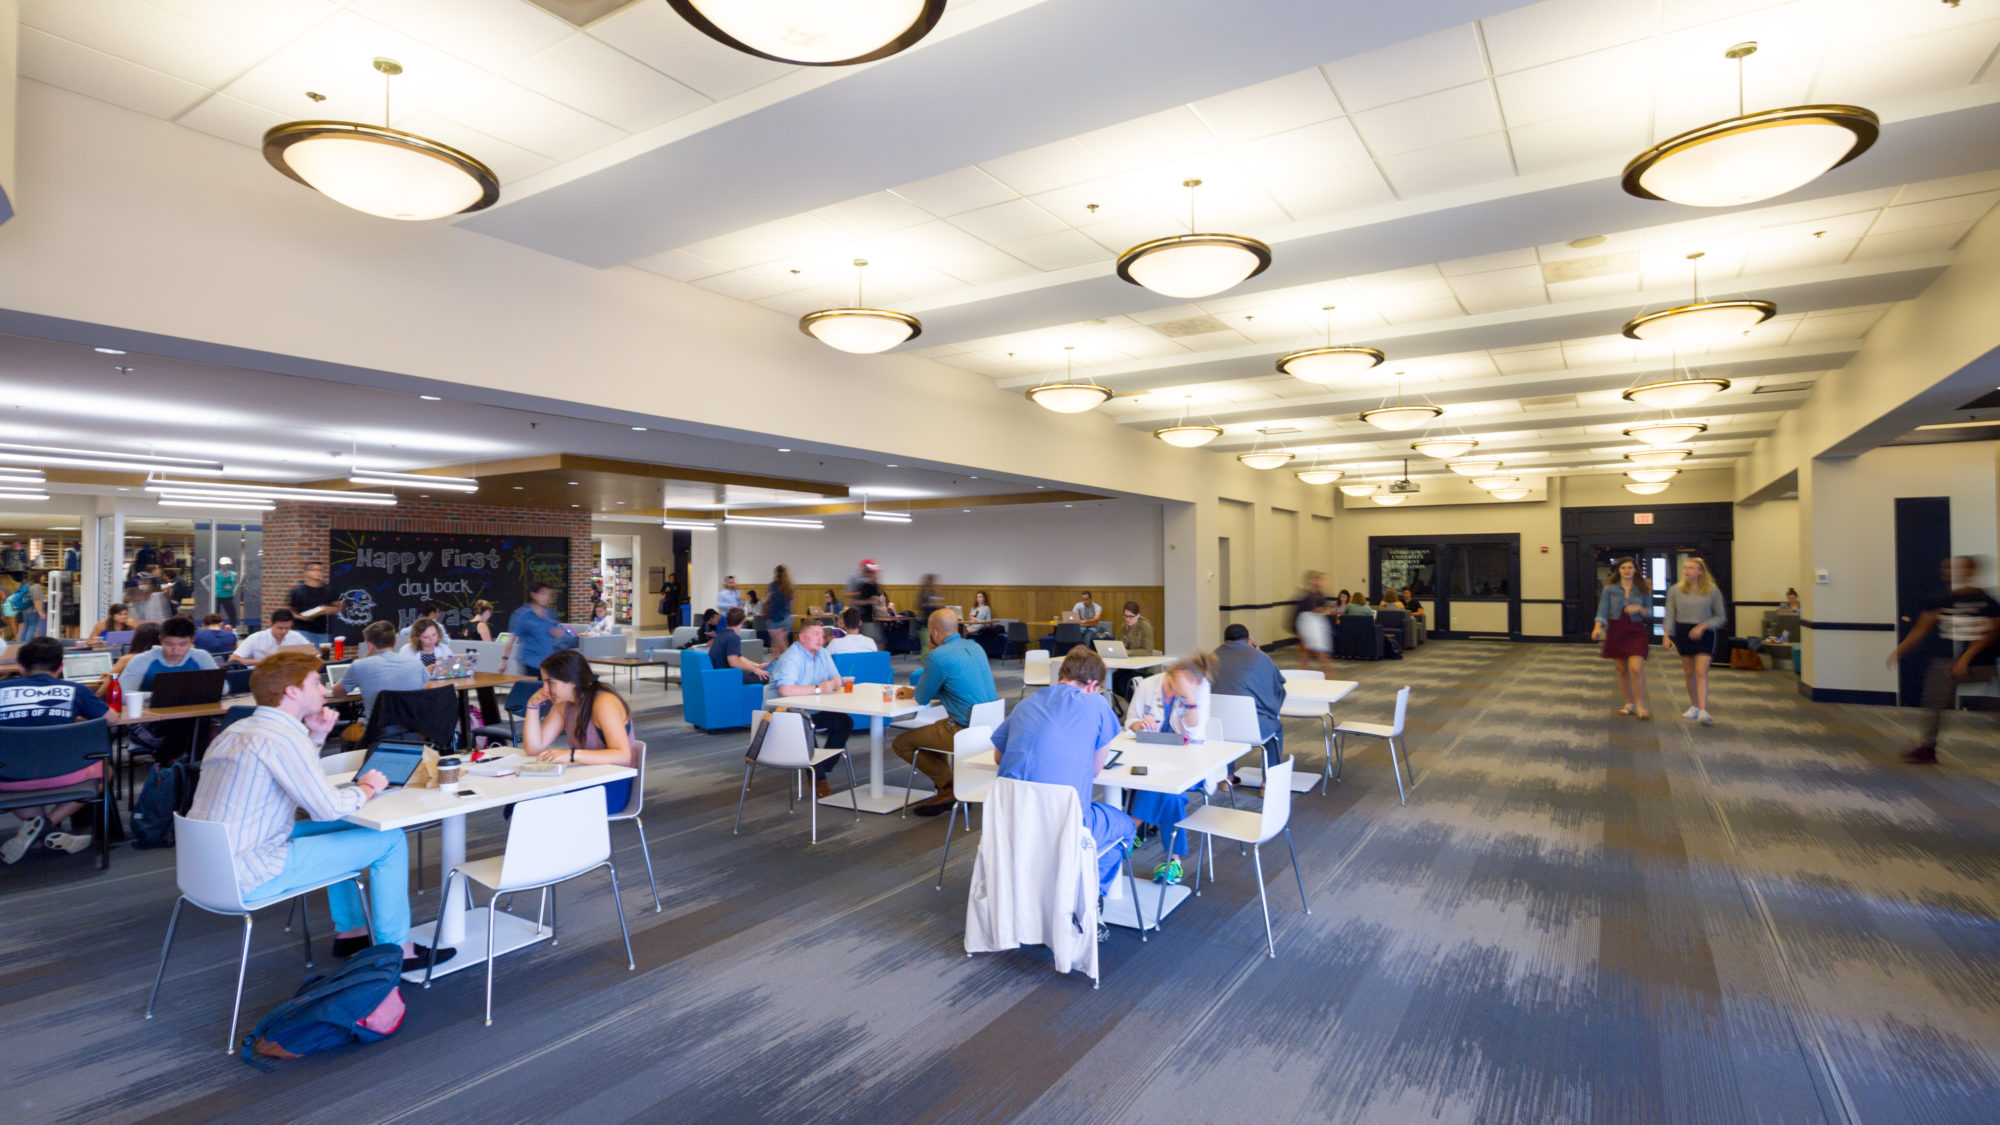 Students are pictured studying in the Leavey Center at different tables.